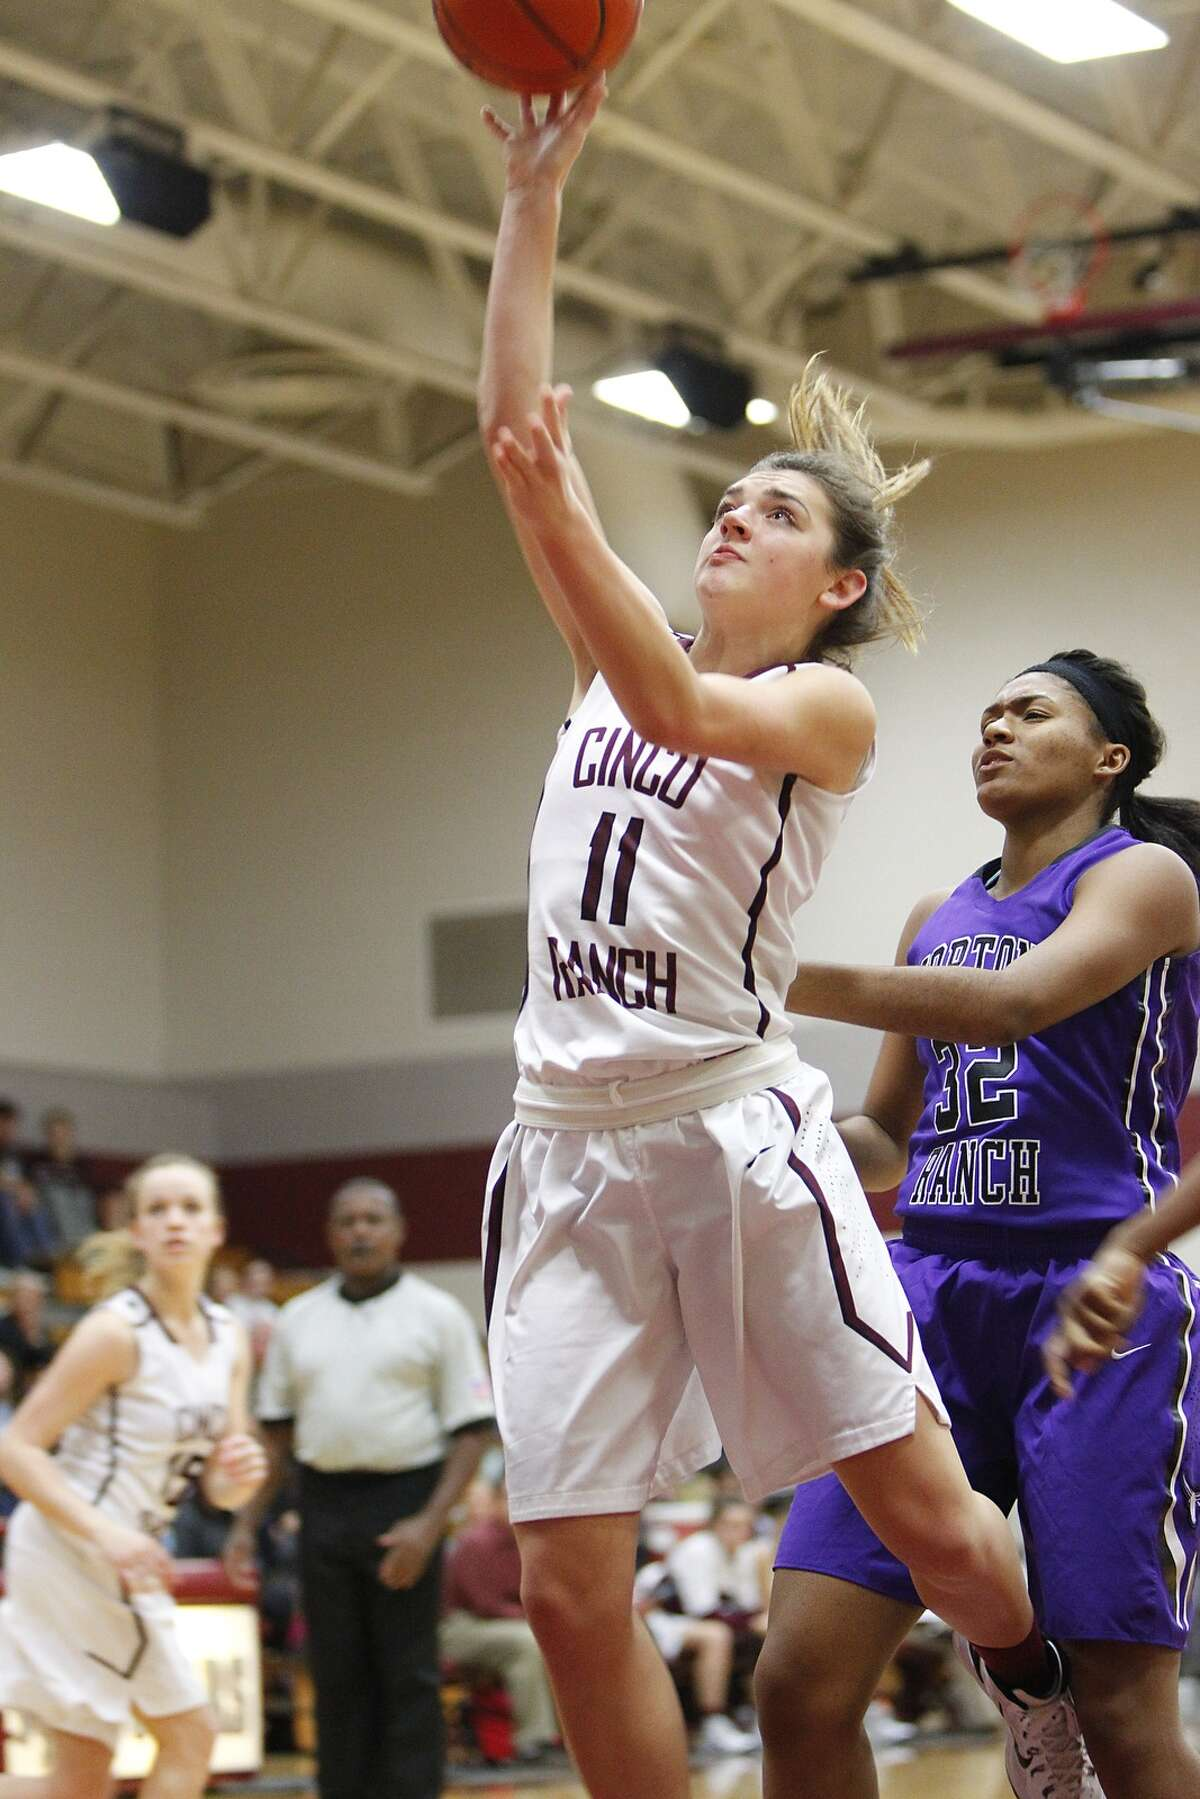 Cinco Ranch's Kelly Lynch goes for the layup as the Lady Cougars hosted Morton Ranch at Cinco Ranch High School on January 23, 2015.